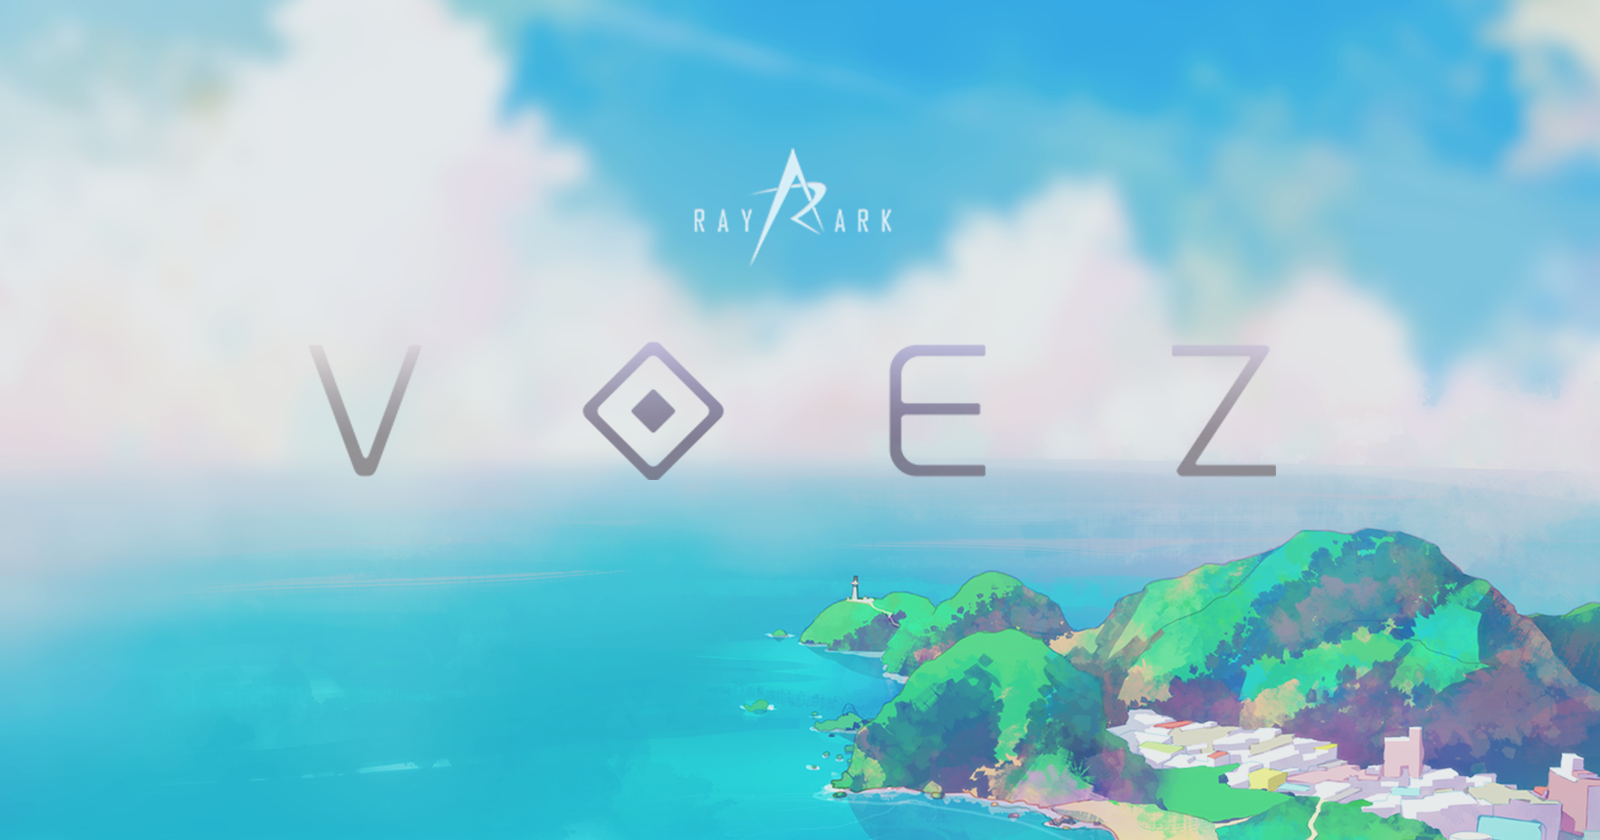 VOECZ the music games for iPhone & iPad 2018